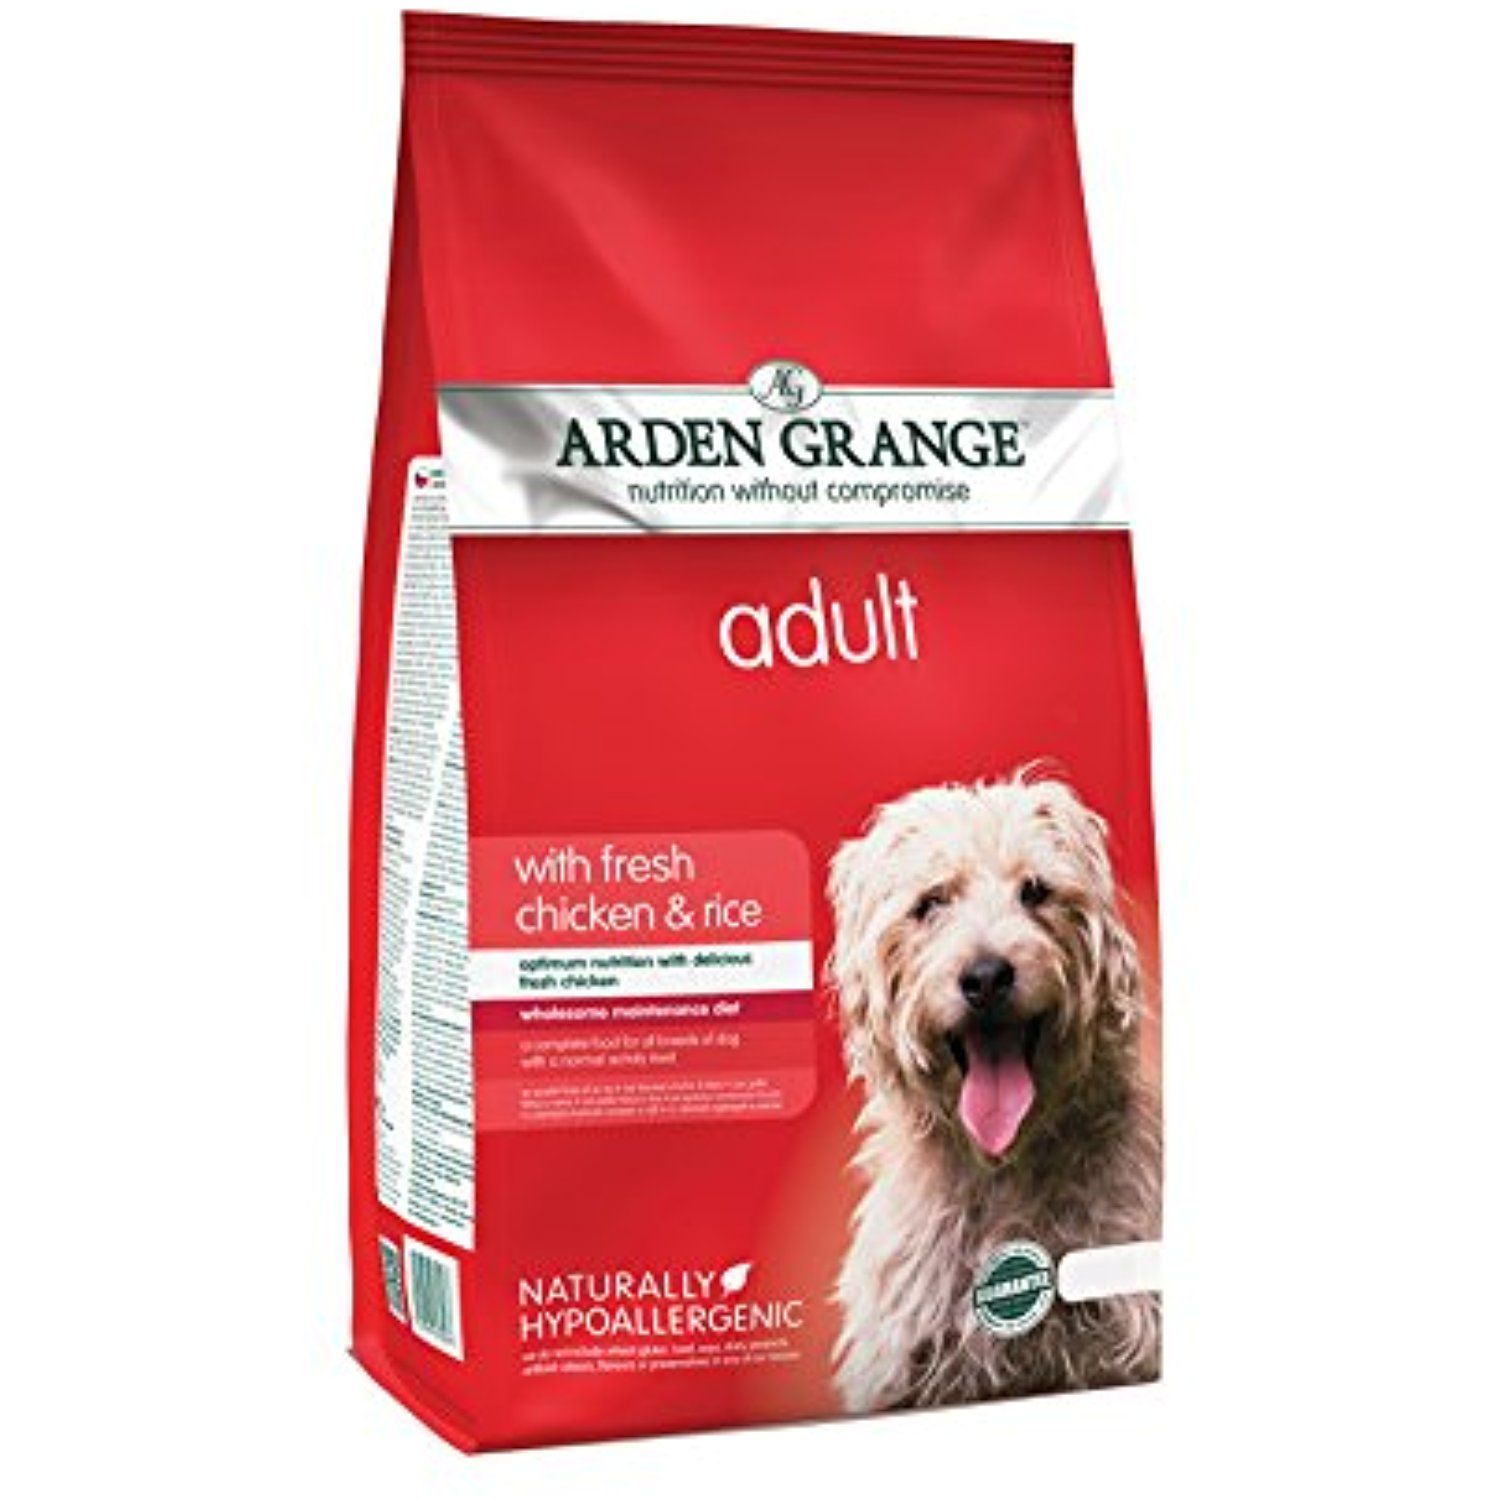 Arden Grange Adult Chicken Dog Food You Can Click Image To